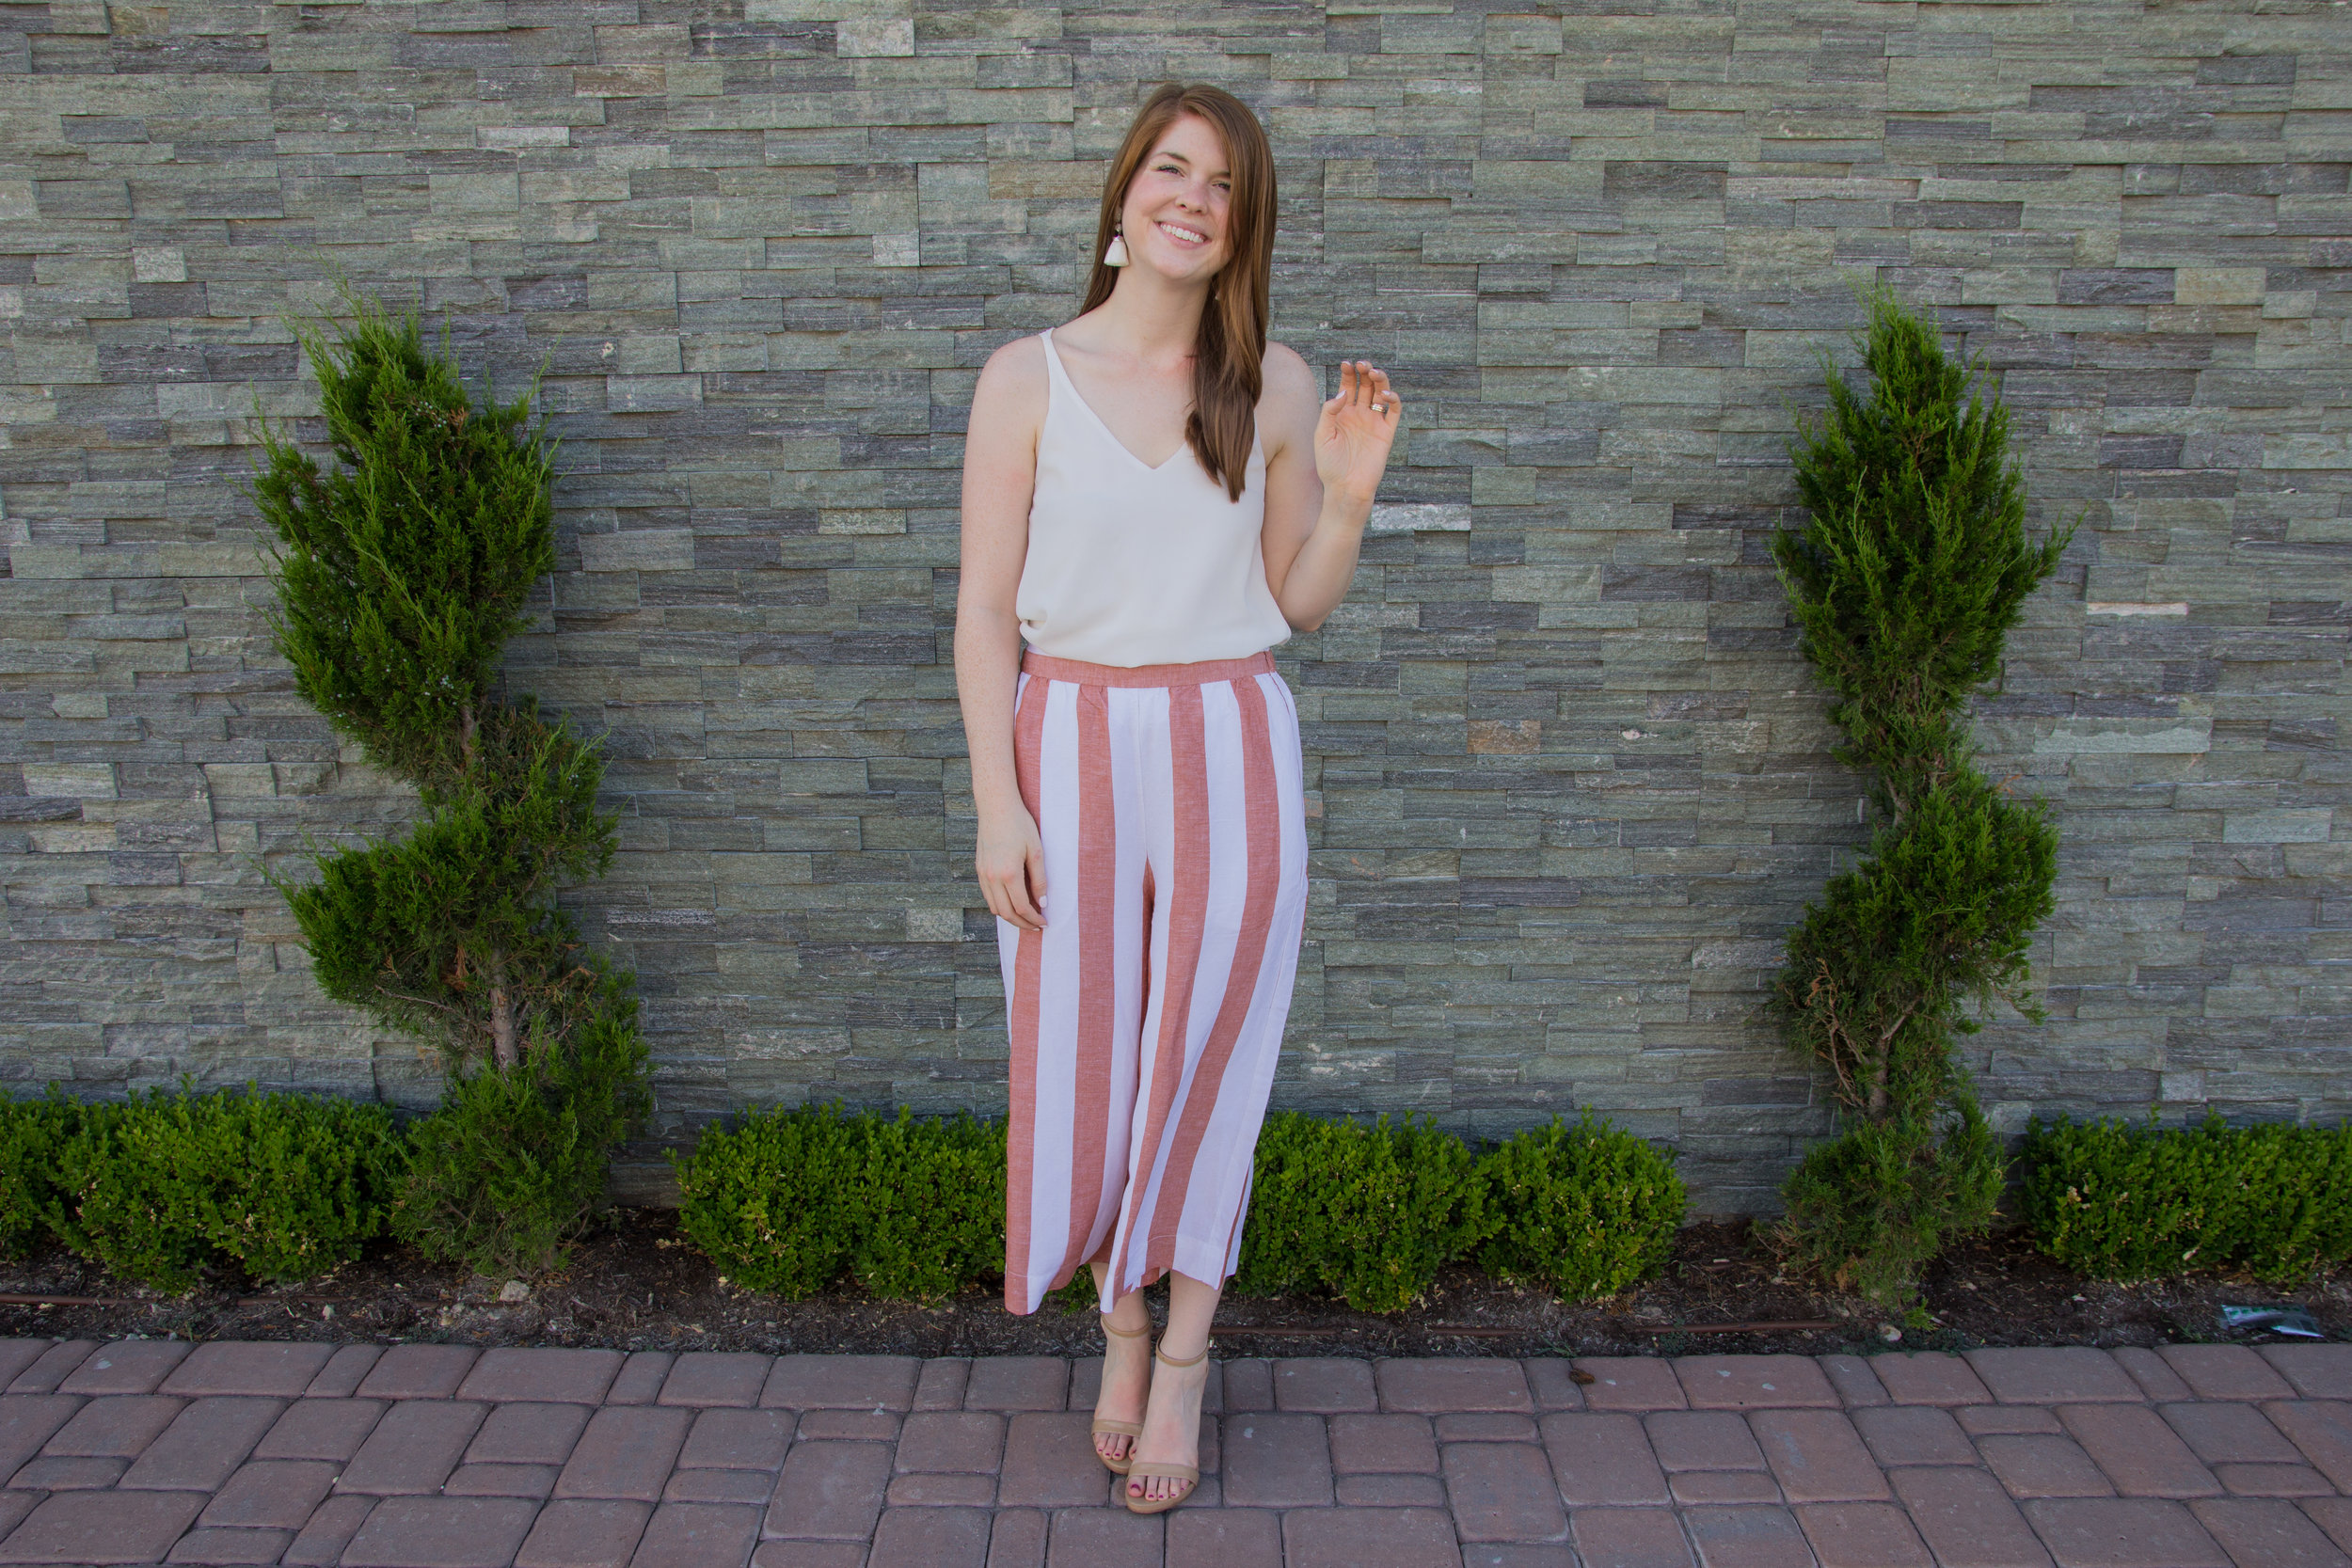 madewell huston pull-on pants in evelyn stripe, kendra scott diane earrings, express downtown cami, sam edelman ariella sandals, the art of versatility, how to style striped crop pants